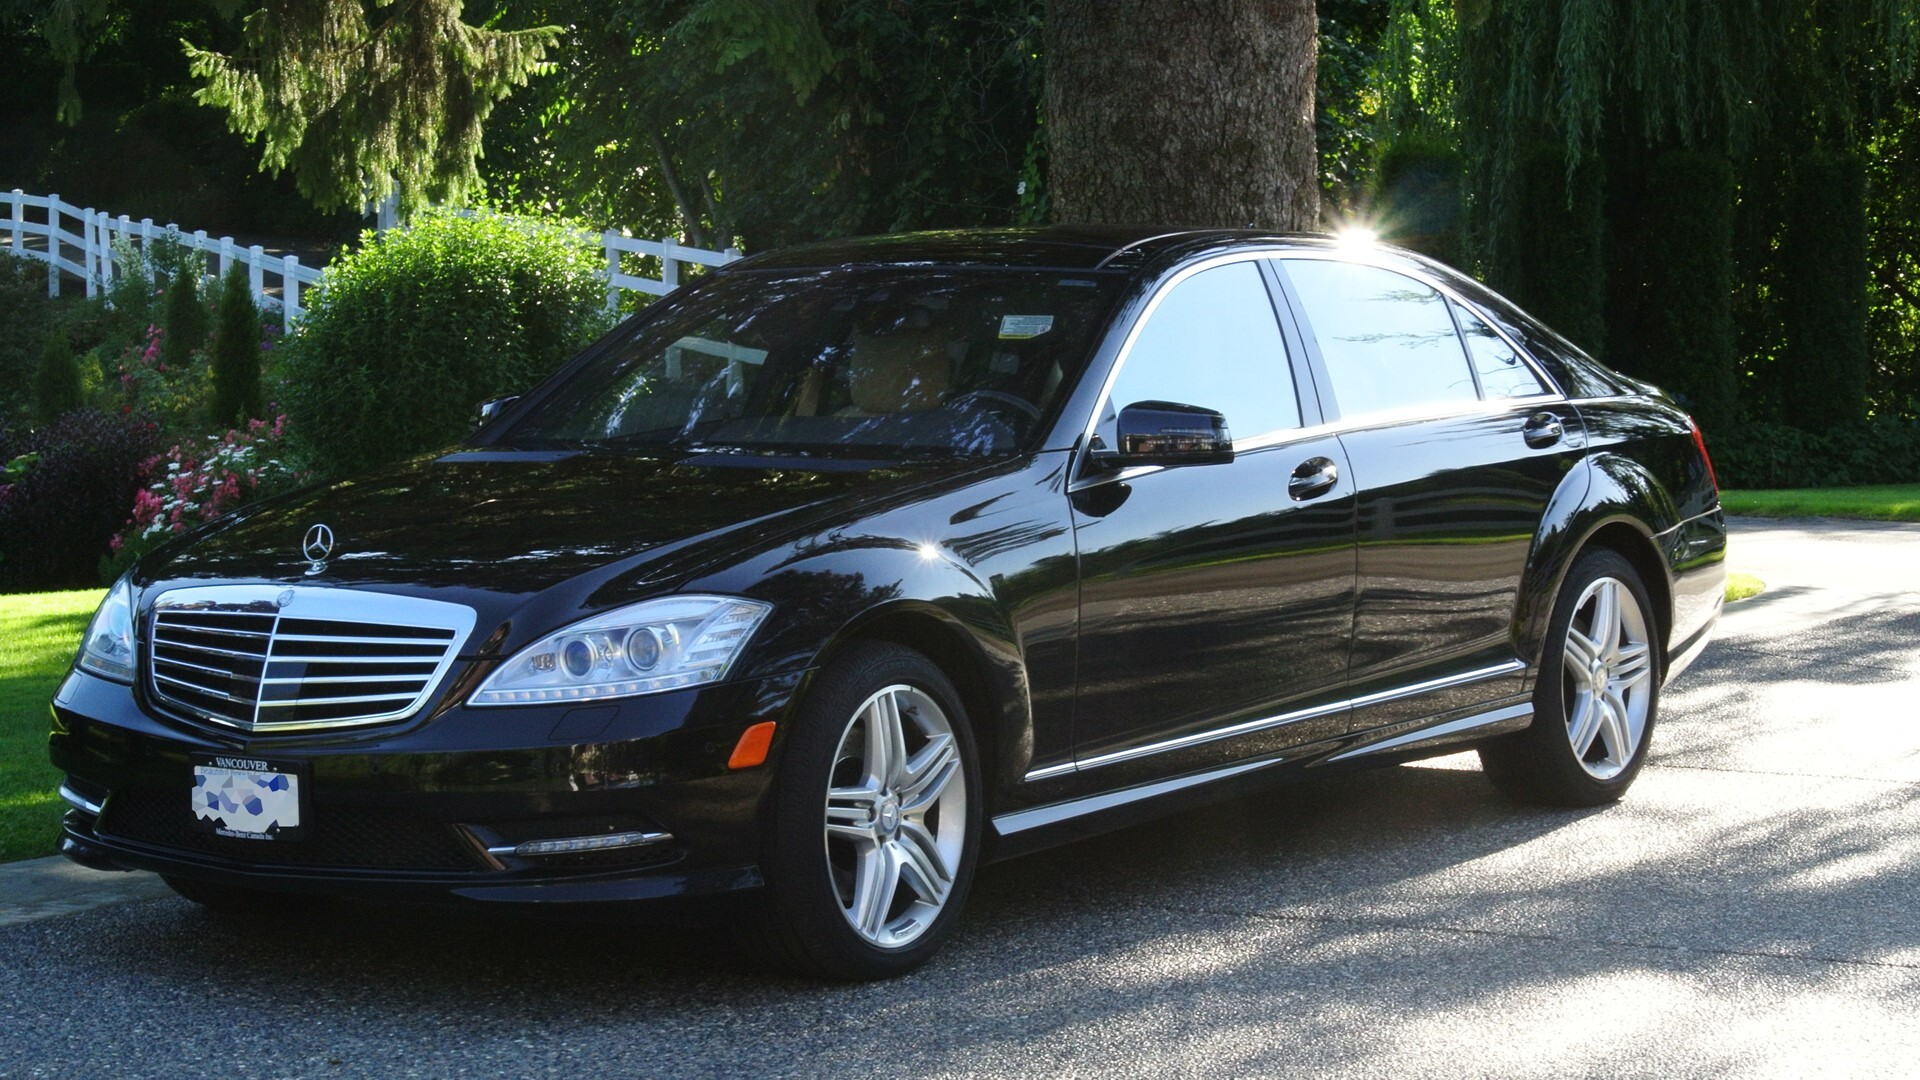 Used Mercedes-Benz S-Class Review - 2007-2013 (W221)